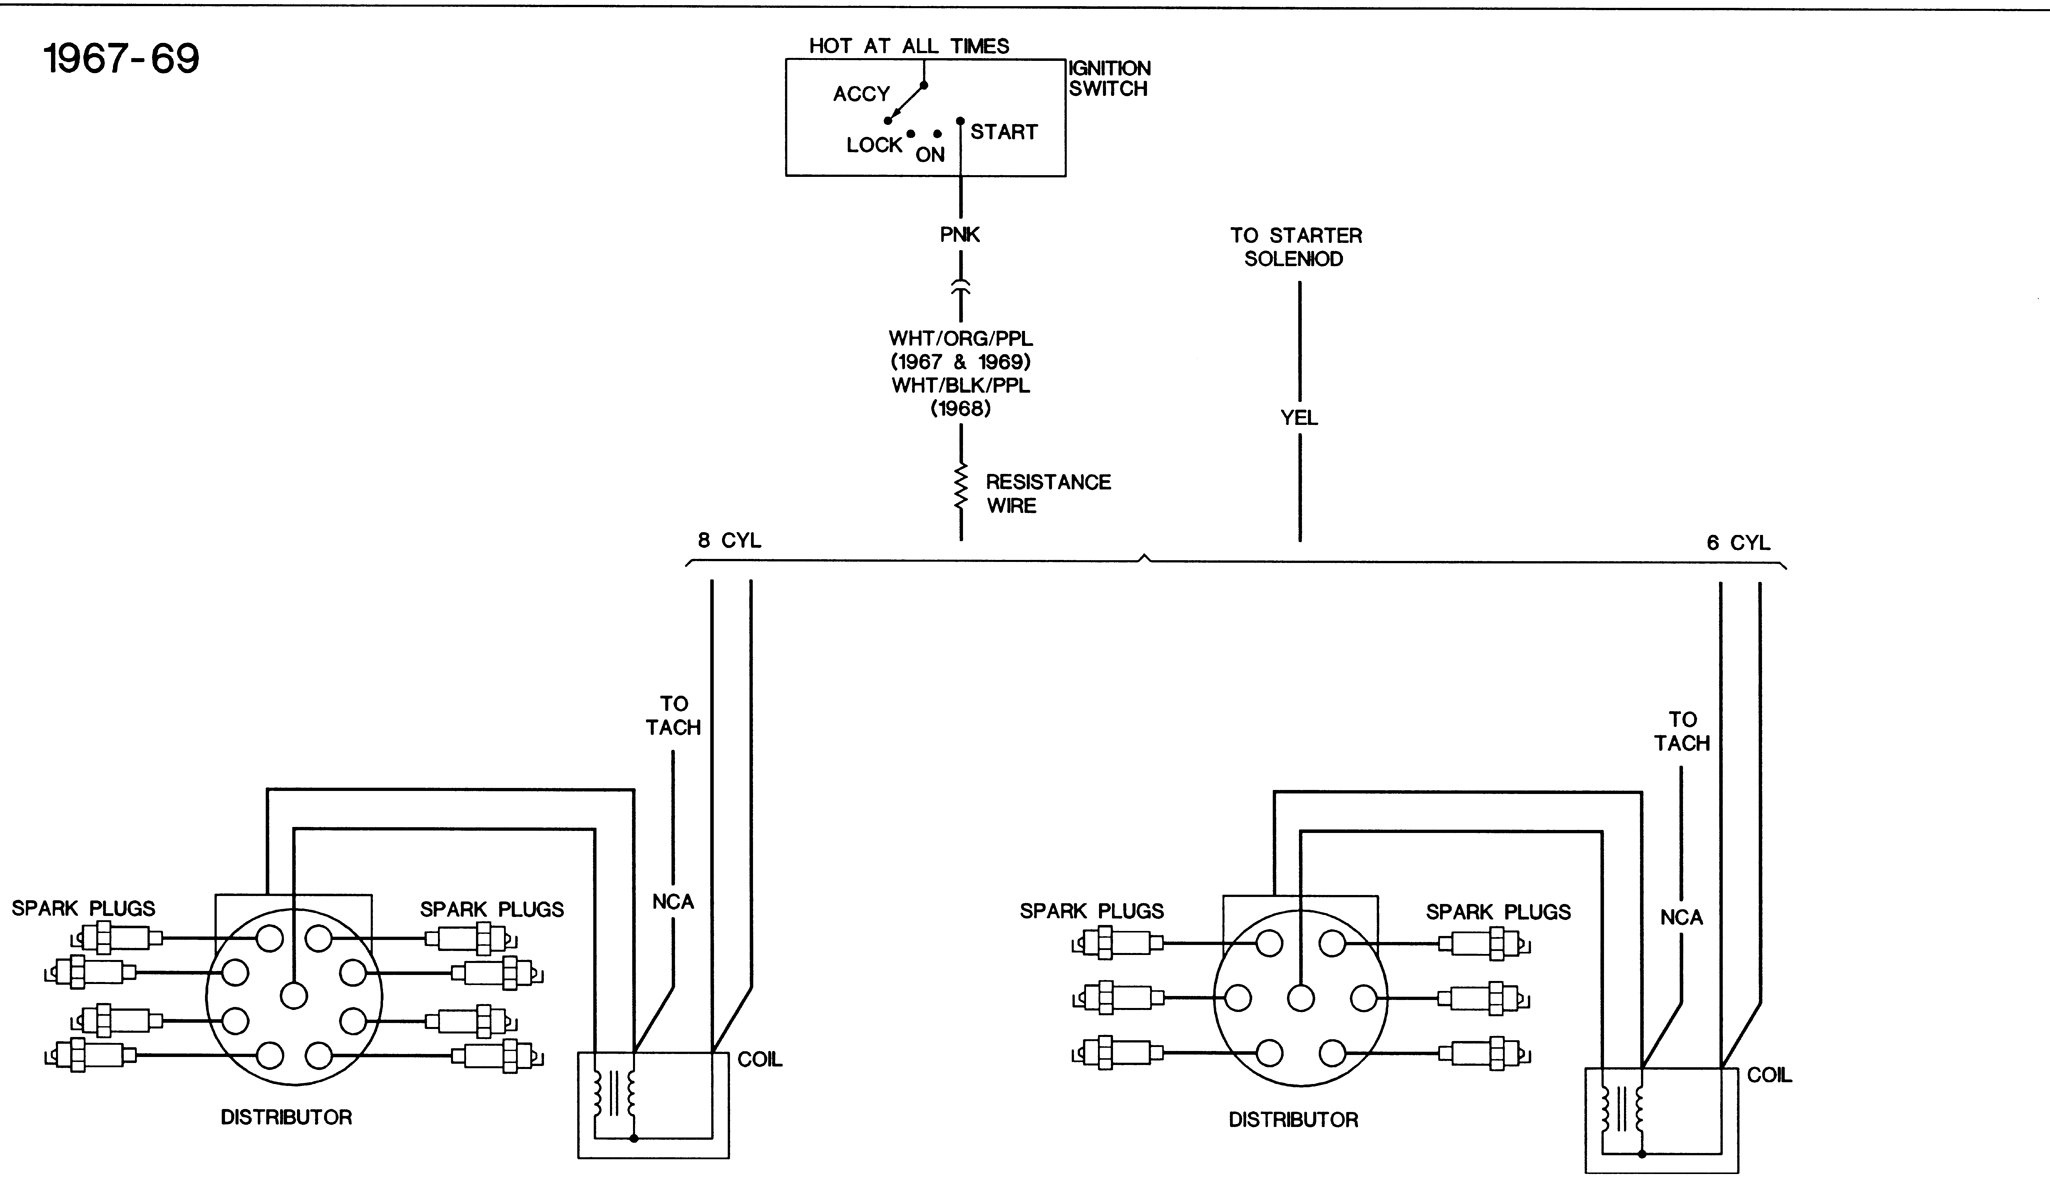 68 camaro tech wiring diagram - dvc wiring diagram for wiring diagram  schematics  wiring diagram schematics